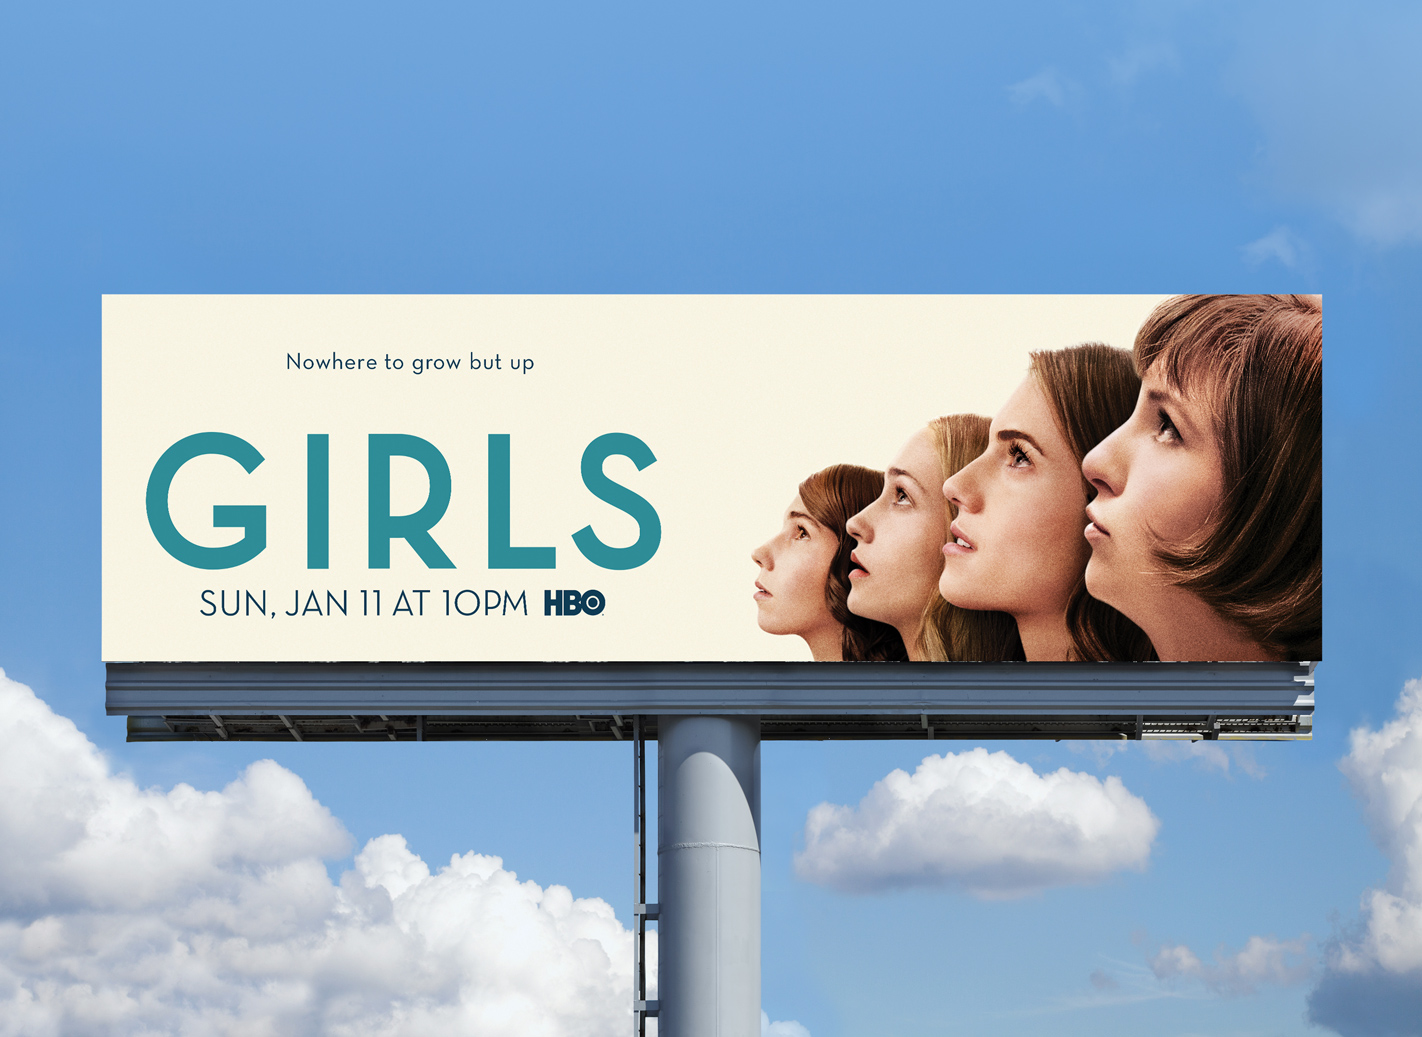 GIRLS_S4_BILLBOARD_01.jpg